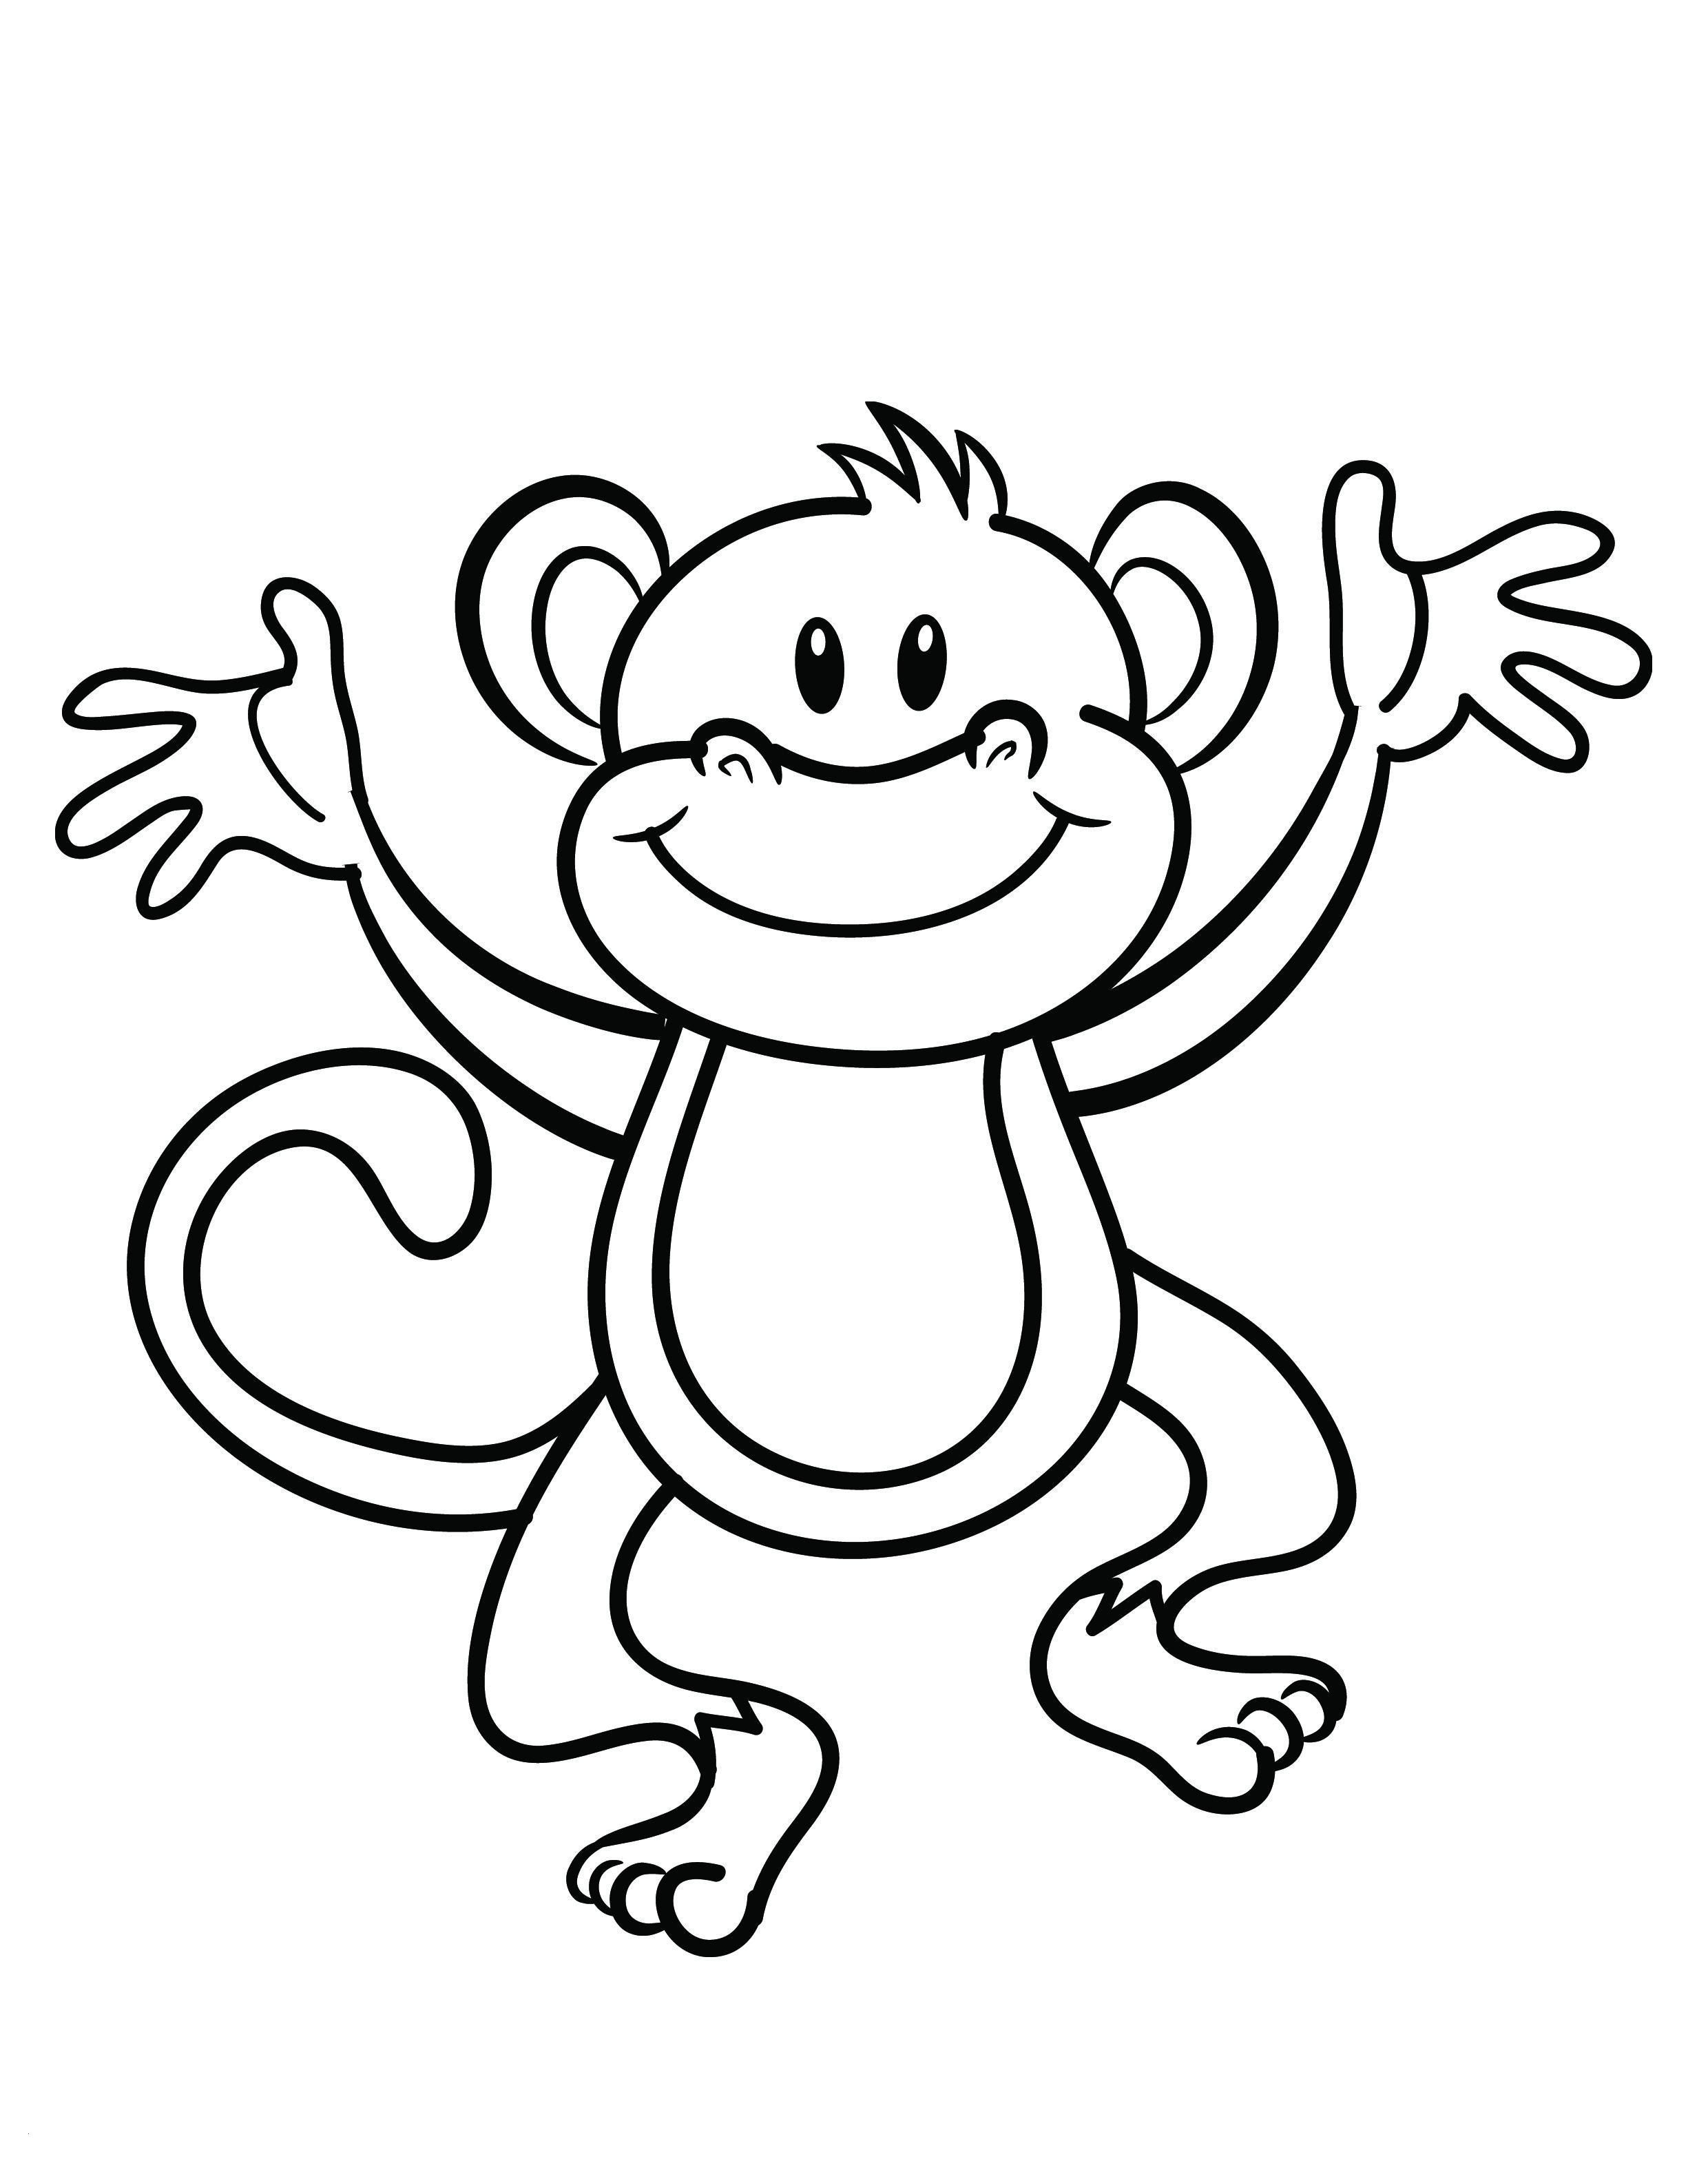 Monkey Coloring Pages For Kids Monkey Coloring Pages Animal Coloring Pages Animal Templates